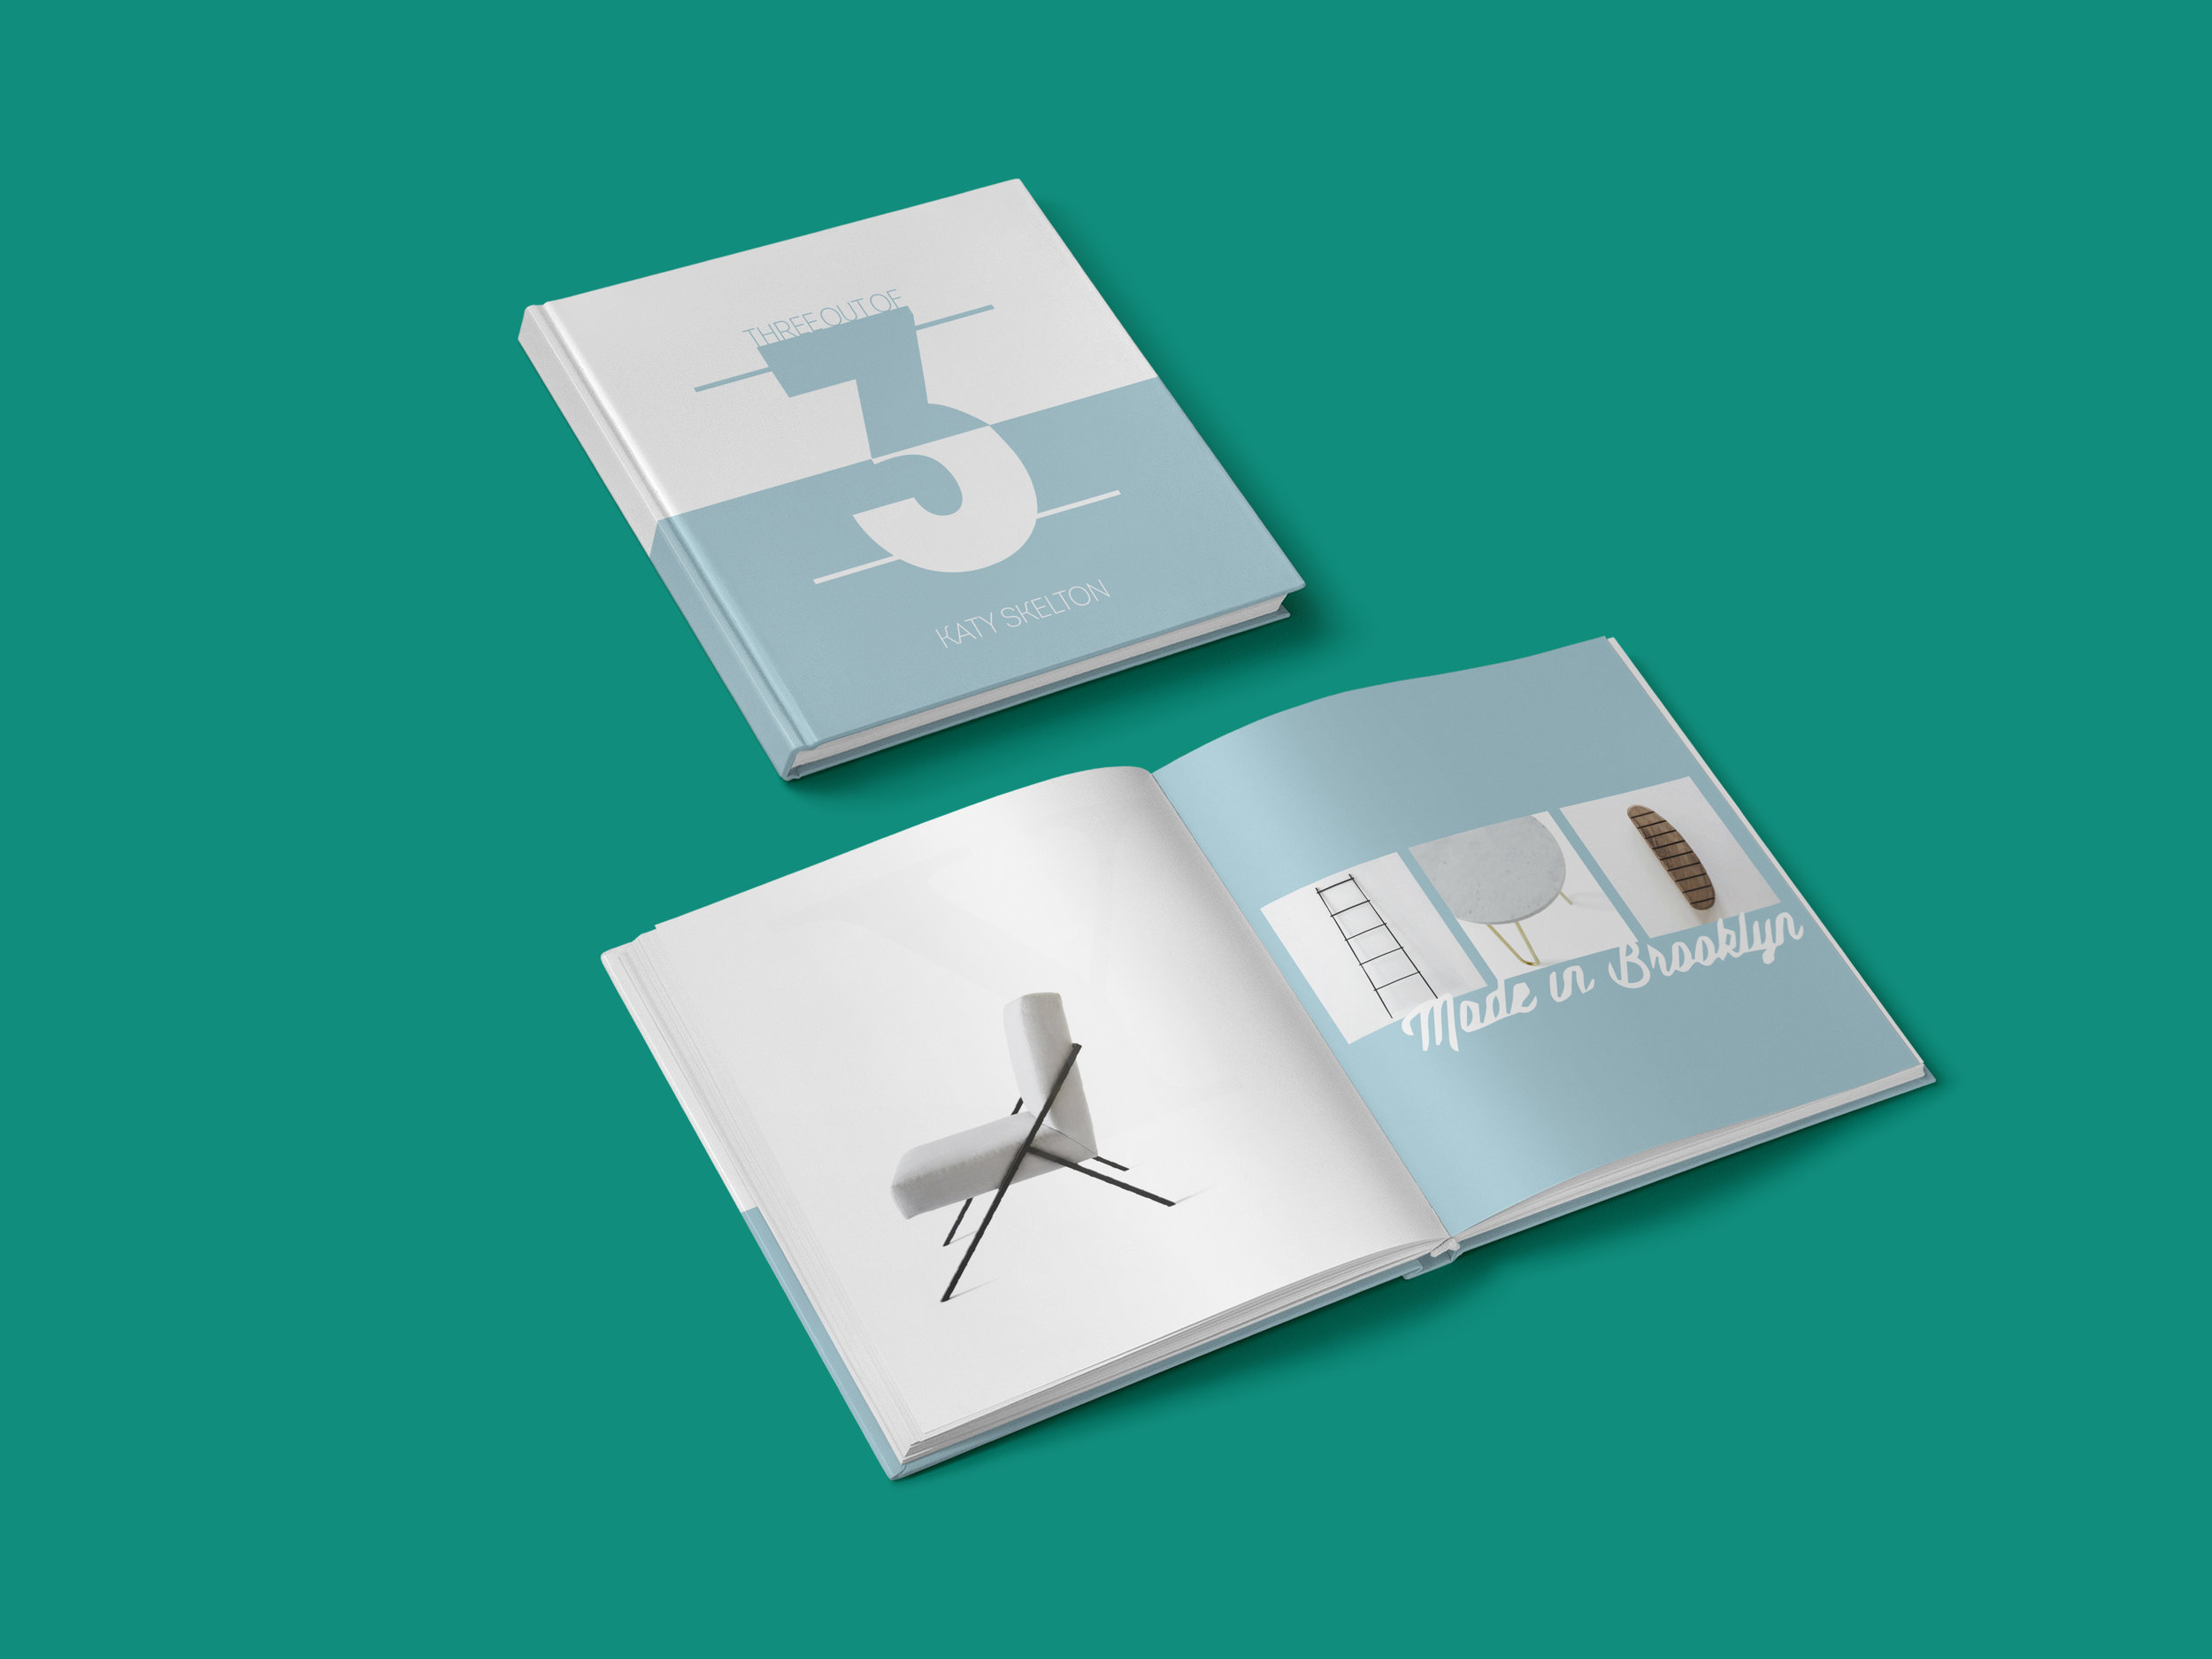 Square Book Mockup - By PuneDesign.jpg